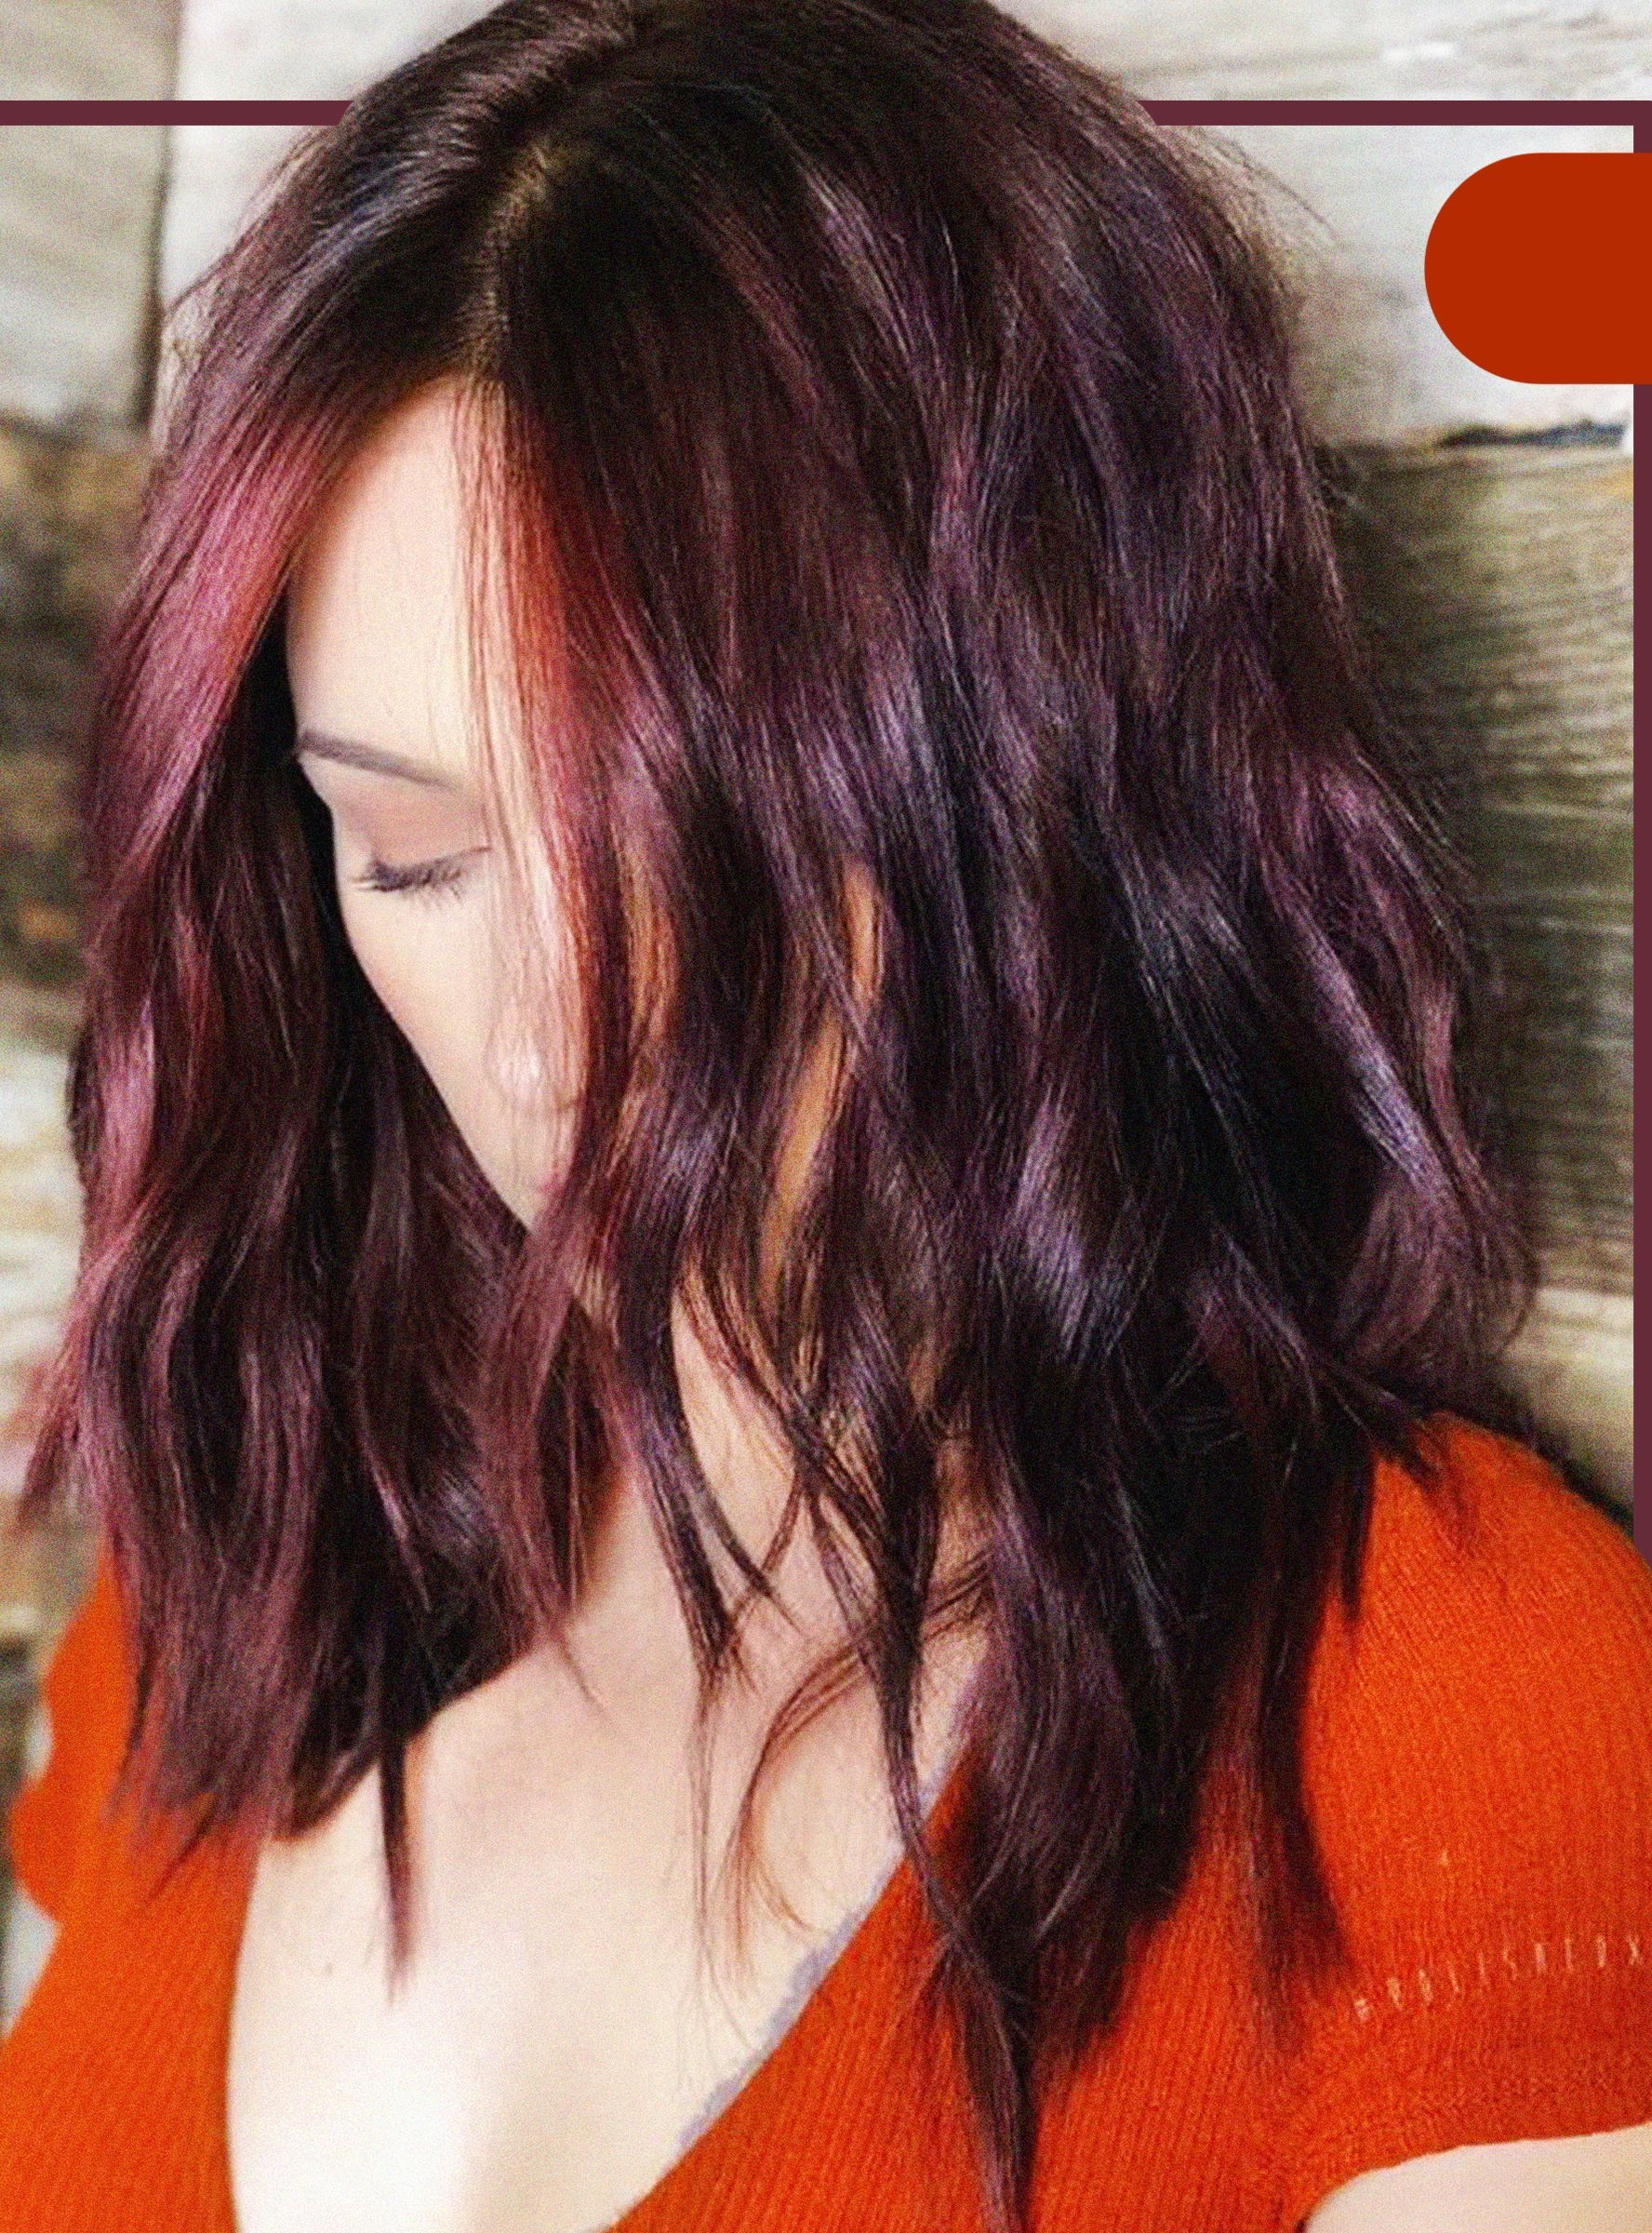 This Red Wine Hair Trend Is Almost As Good As A Glass Of Merlot Https R29 Co 2efxt6i Wine Hair Burgundy Hair Wine Hair Color